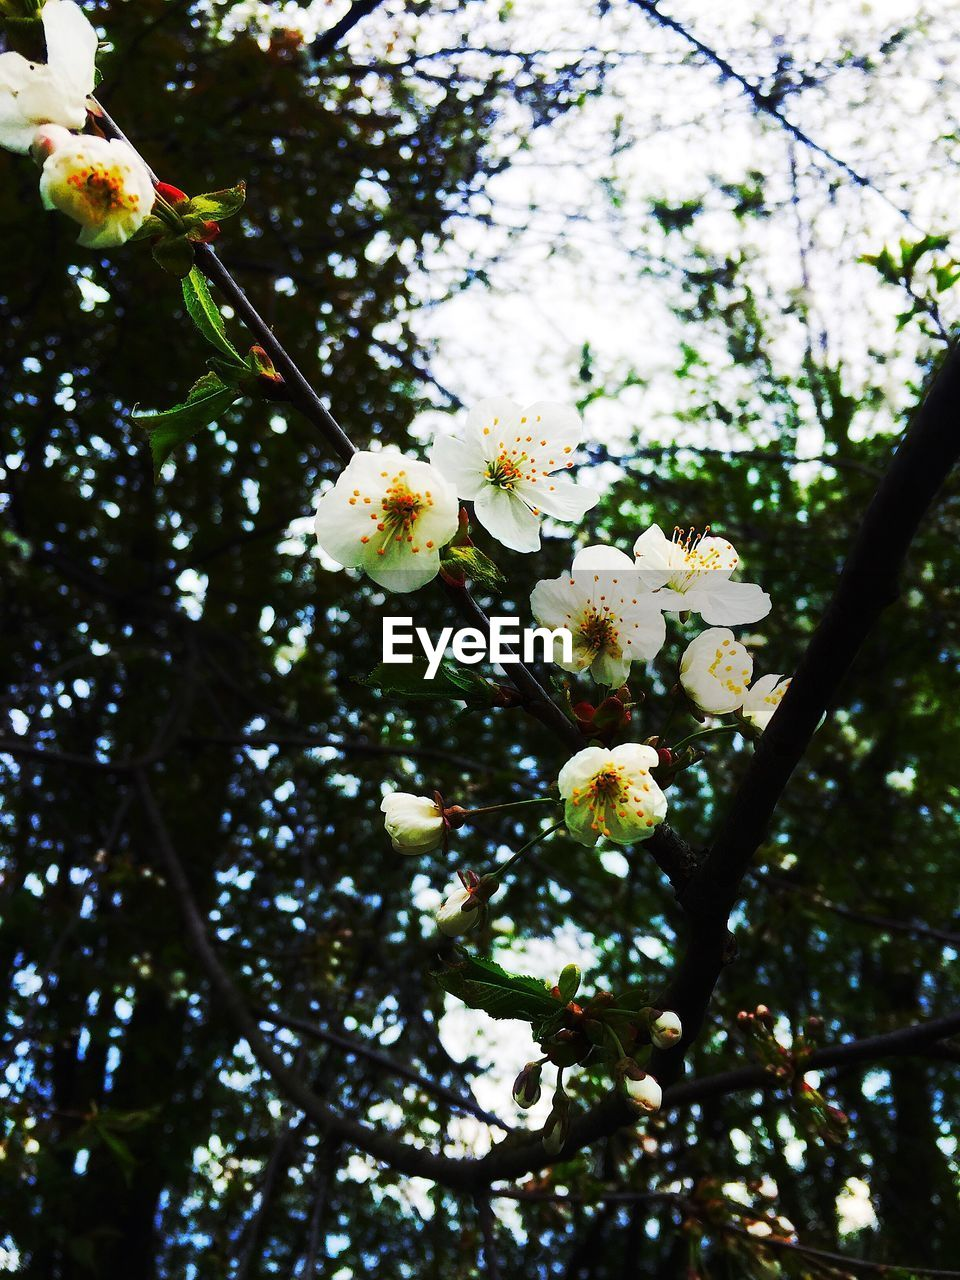 flower, tree, fragility, blossom, growth, freshness, beauty in nature, springtime, white color, apple blossom, nature, branch, apple tree, botany, orchard, low angle view, petal, no people, twig, day, close-up, flower head, outdoors, stamen, blooming